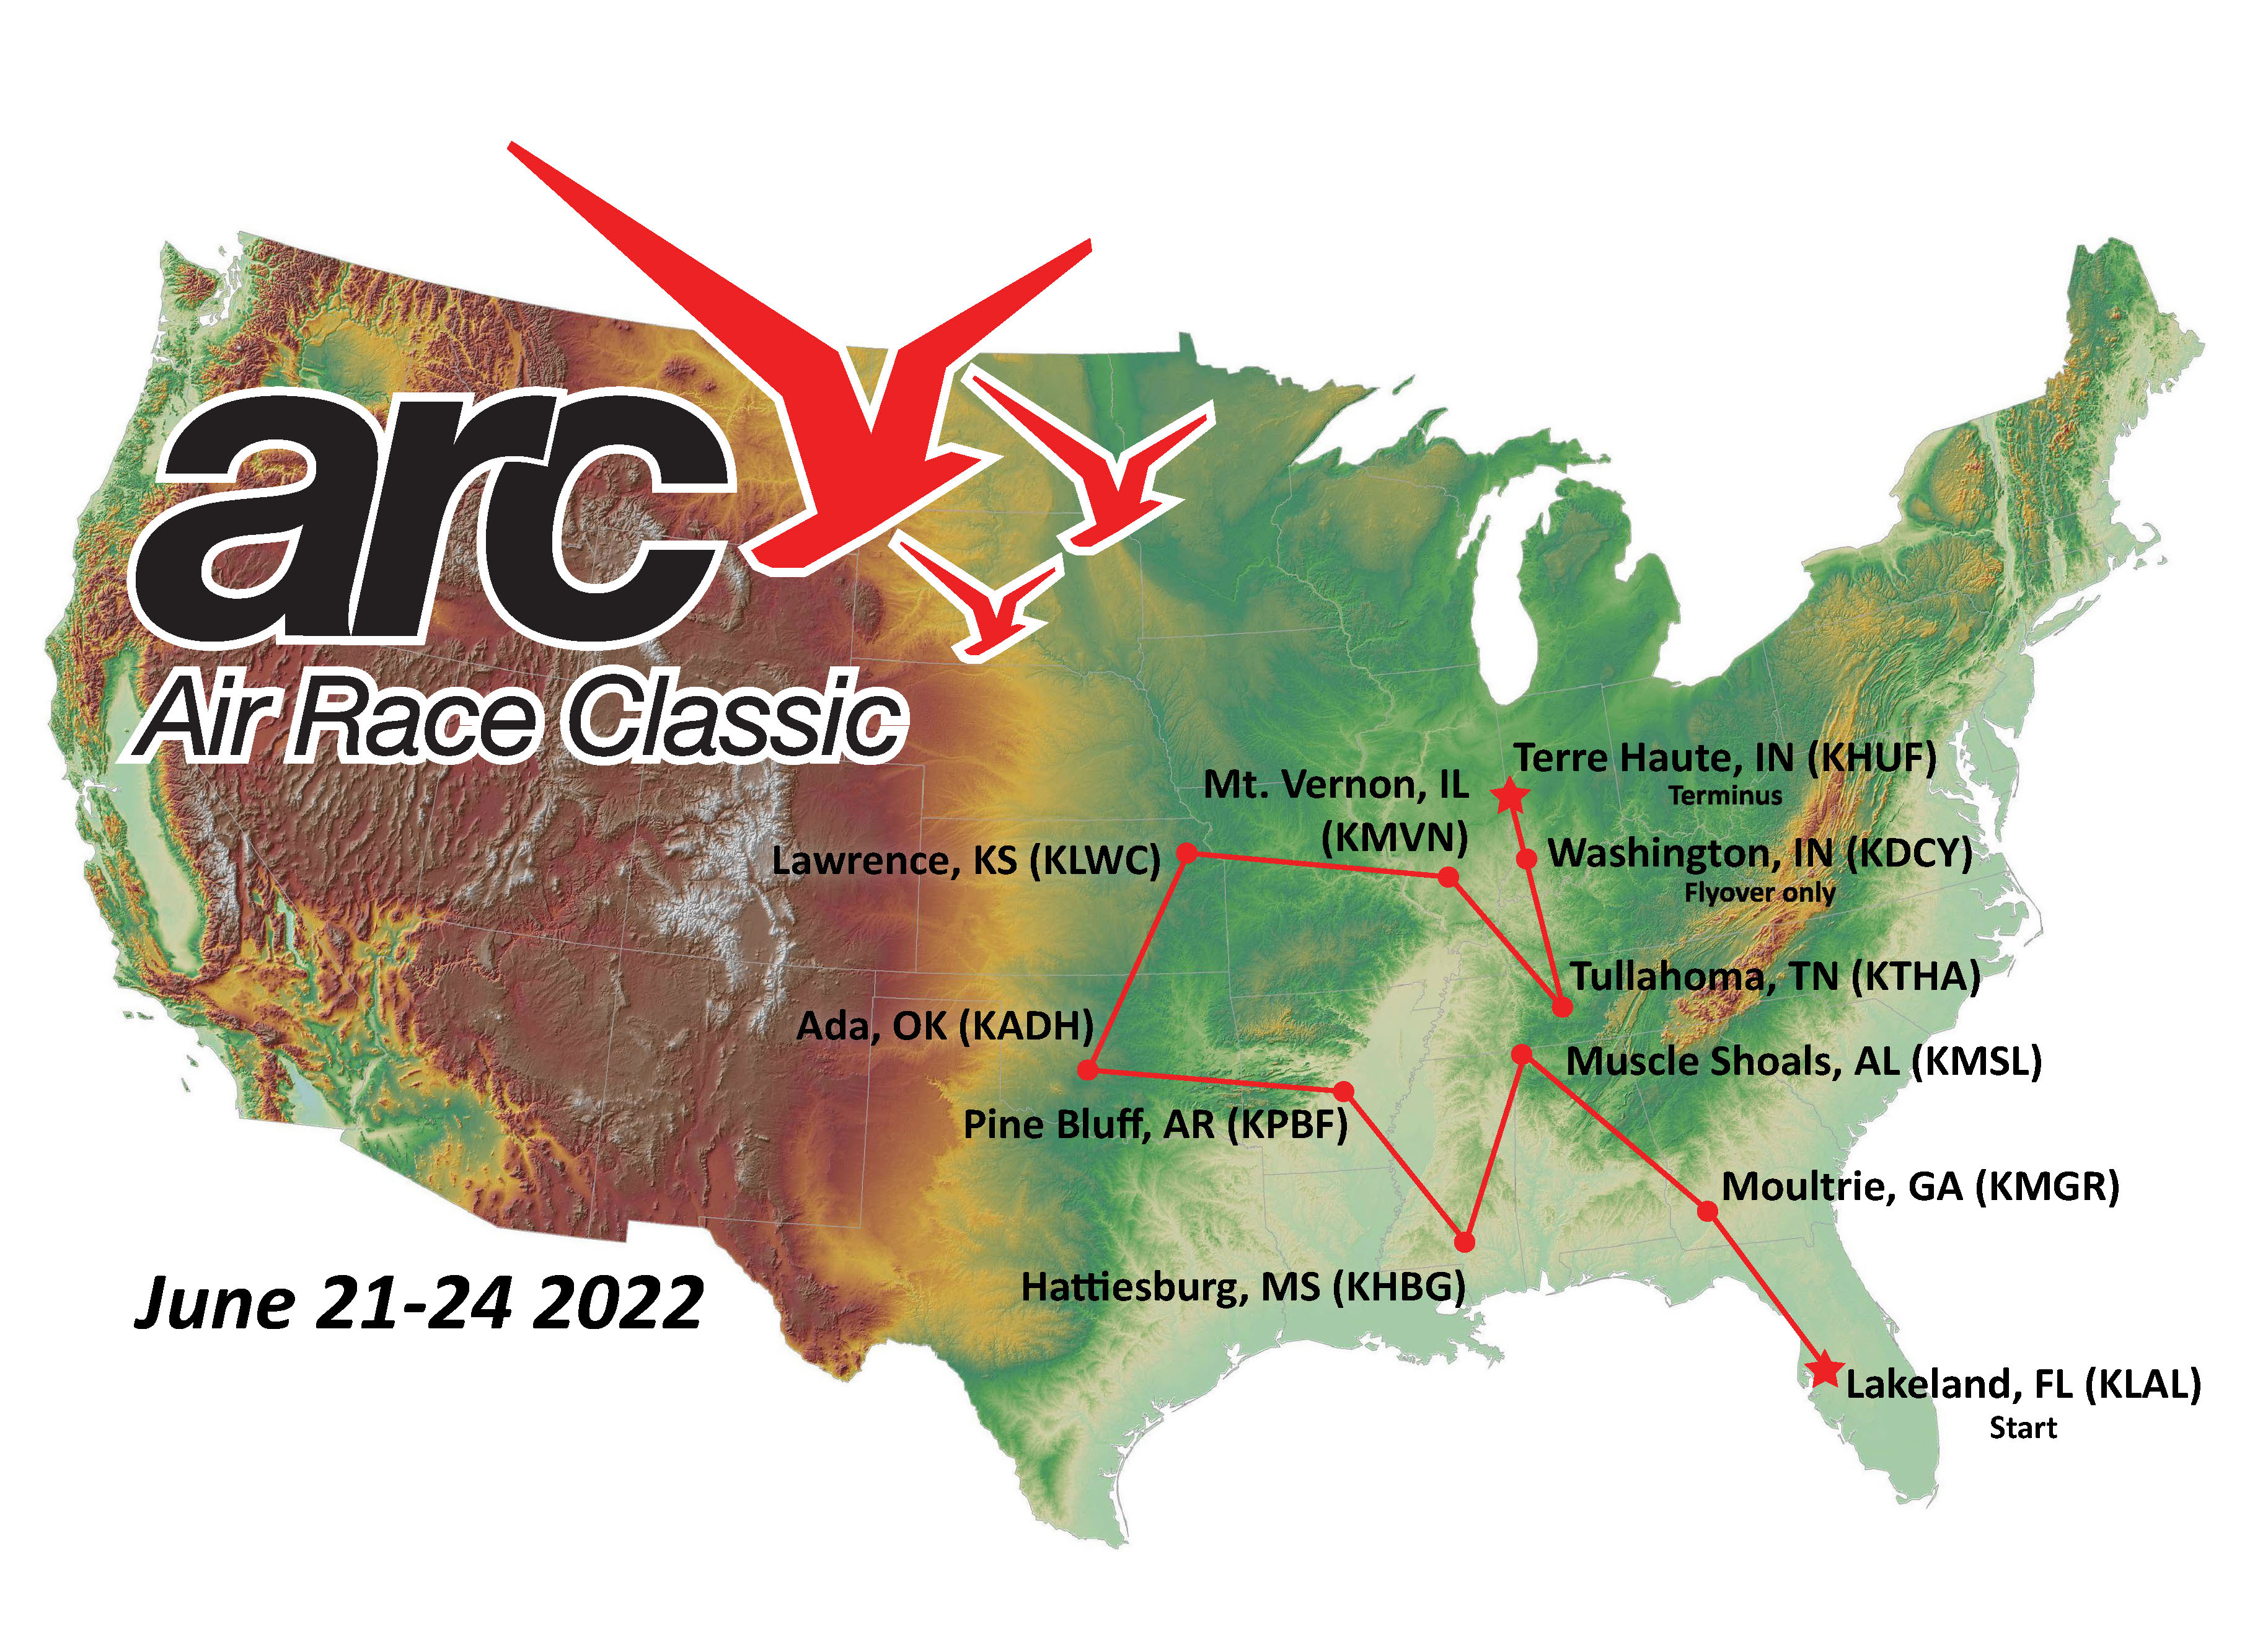 Welcome To The Air Race Classic Air Race Classic Inc - 1934 us highways map midwest